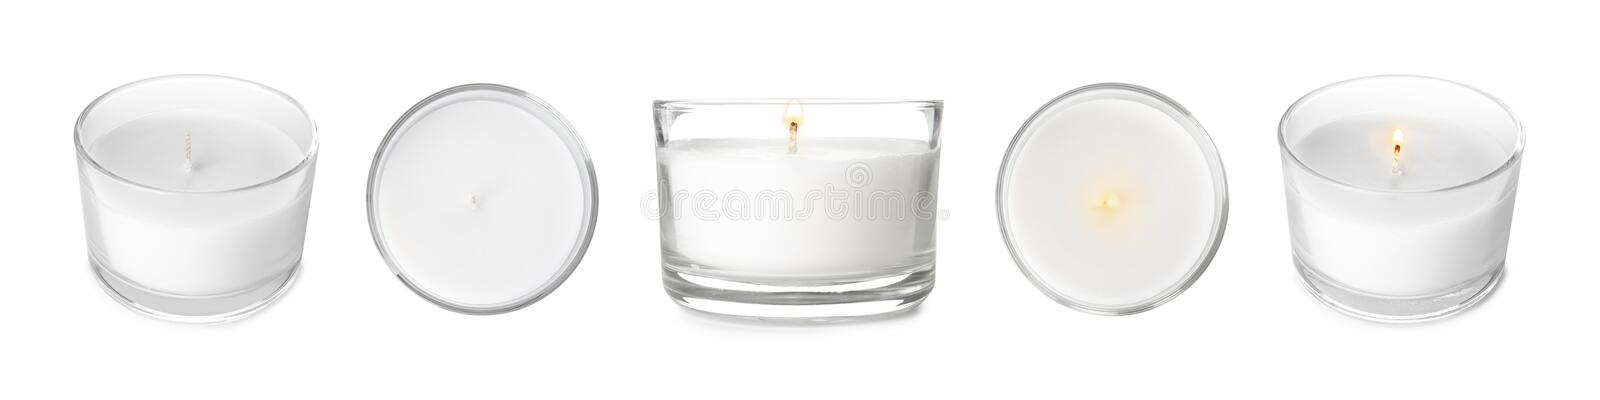 Set with decorative wax candles on white. Banner design royalty free stock photos